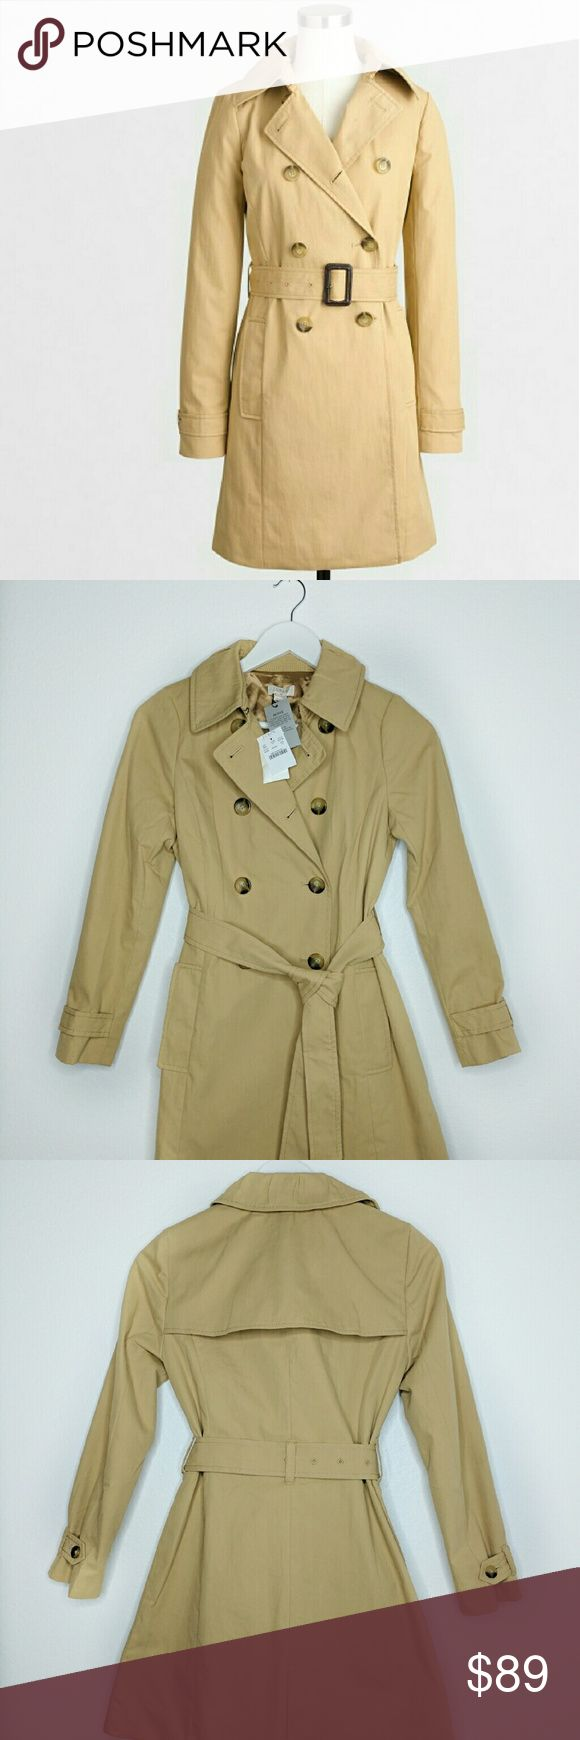 NEW J.Crew Trench Coat Petite New with tags, J.Crew Factory. Size 0 Petite. Warm Desert Color. First Photo from the J.Crew Factory website just to reference.  I always ship next day :) J. Crew Jackets & Coats Trench Coats